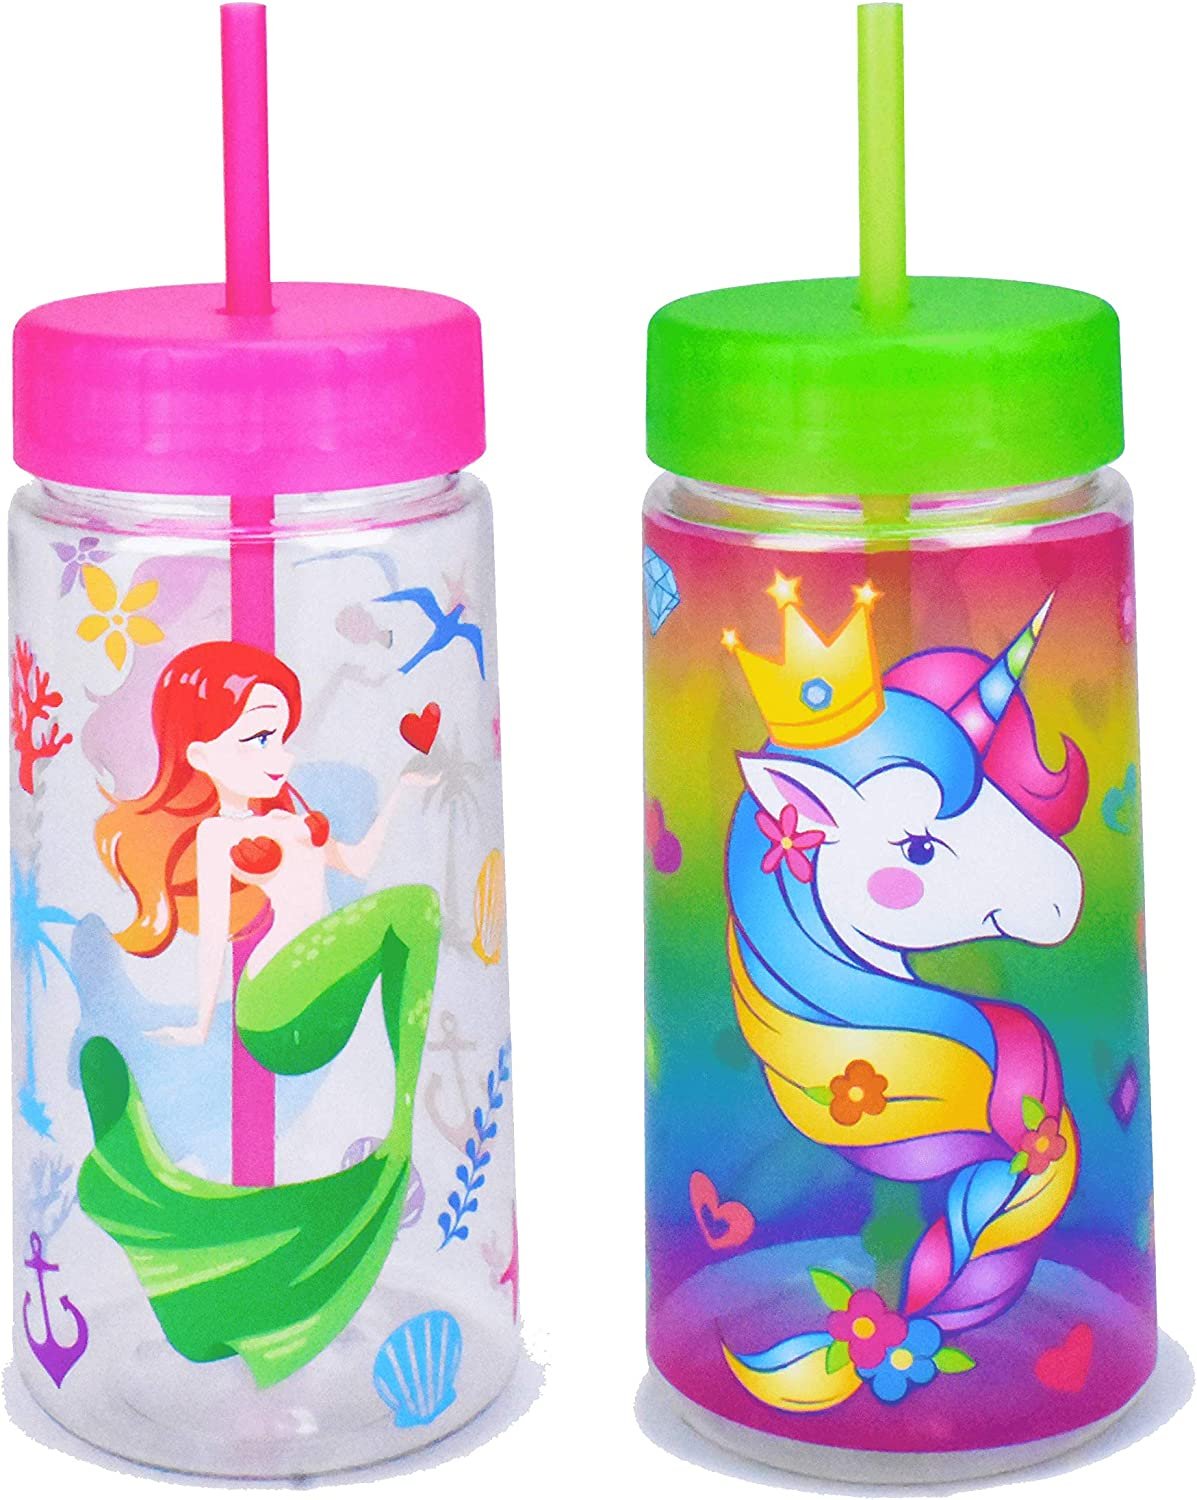 Home Tune 28oz Water Drinking Bottle - BPA Free, Wide Mouth, Travel Beverage Cup with Straw Lid, Lightweight, Water Bottle with Cute Foil Print Design for Girls & Boys - 2 Pack